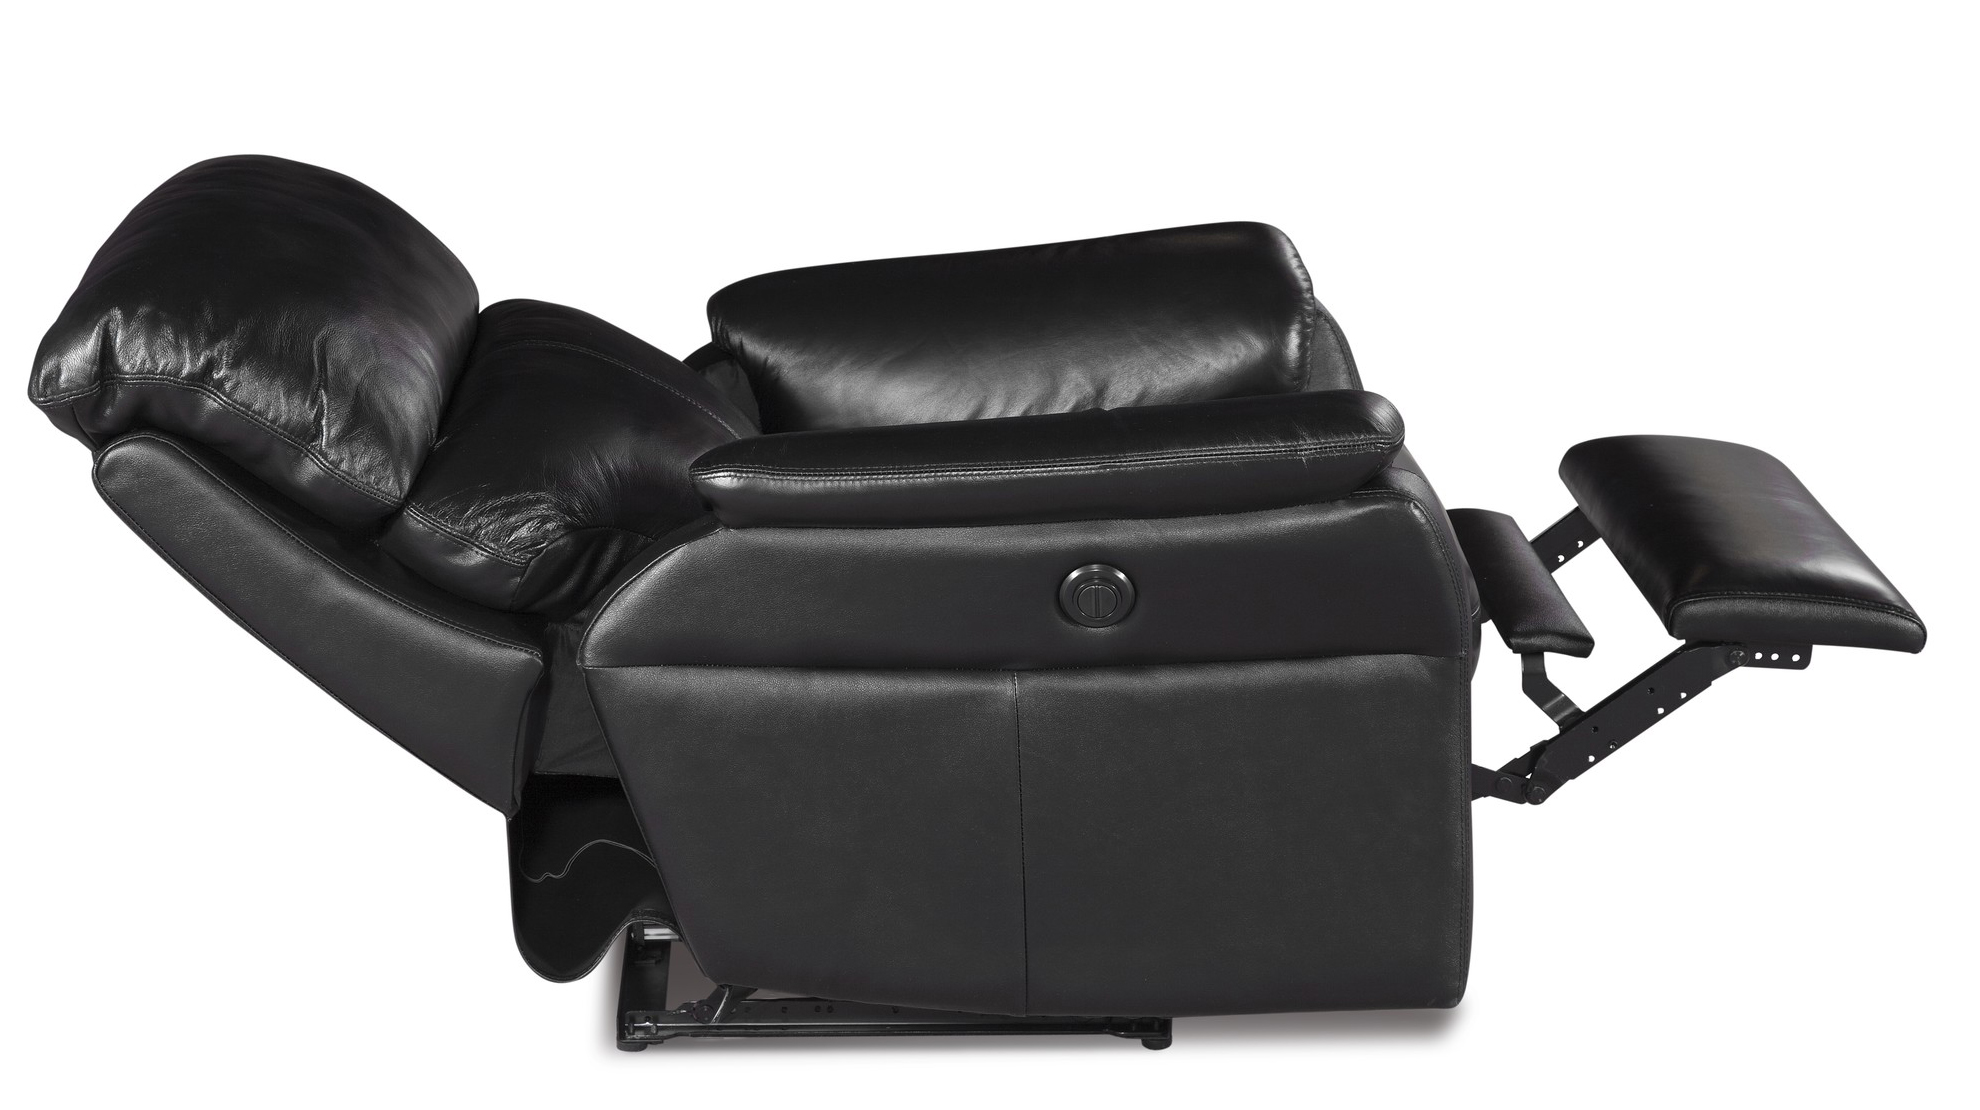 Barcalounger Recliner Cross II Chair Reclined Power Tivoli Ebony Black Leather  sc 1 st  Vitalityweb.com & Barcalounger Cross II Wall Proximity Hugger Lay Flat Recliner ... islam-shia.org